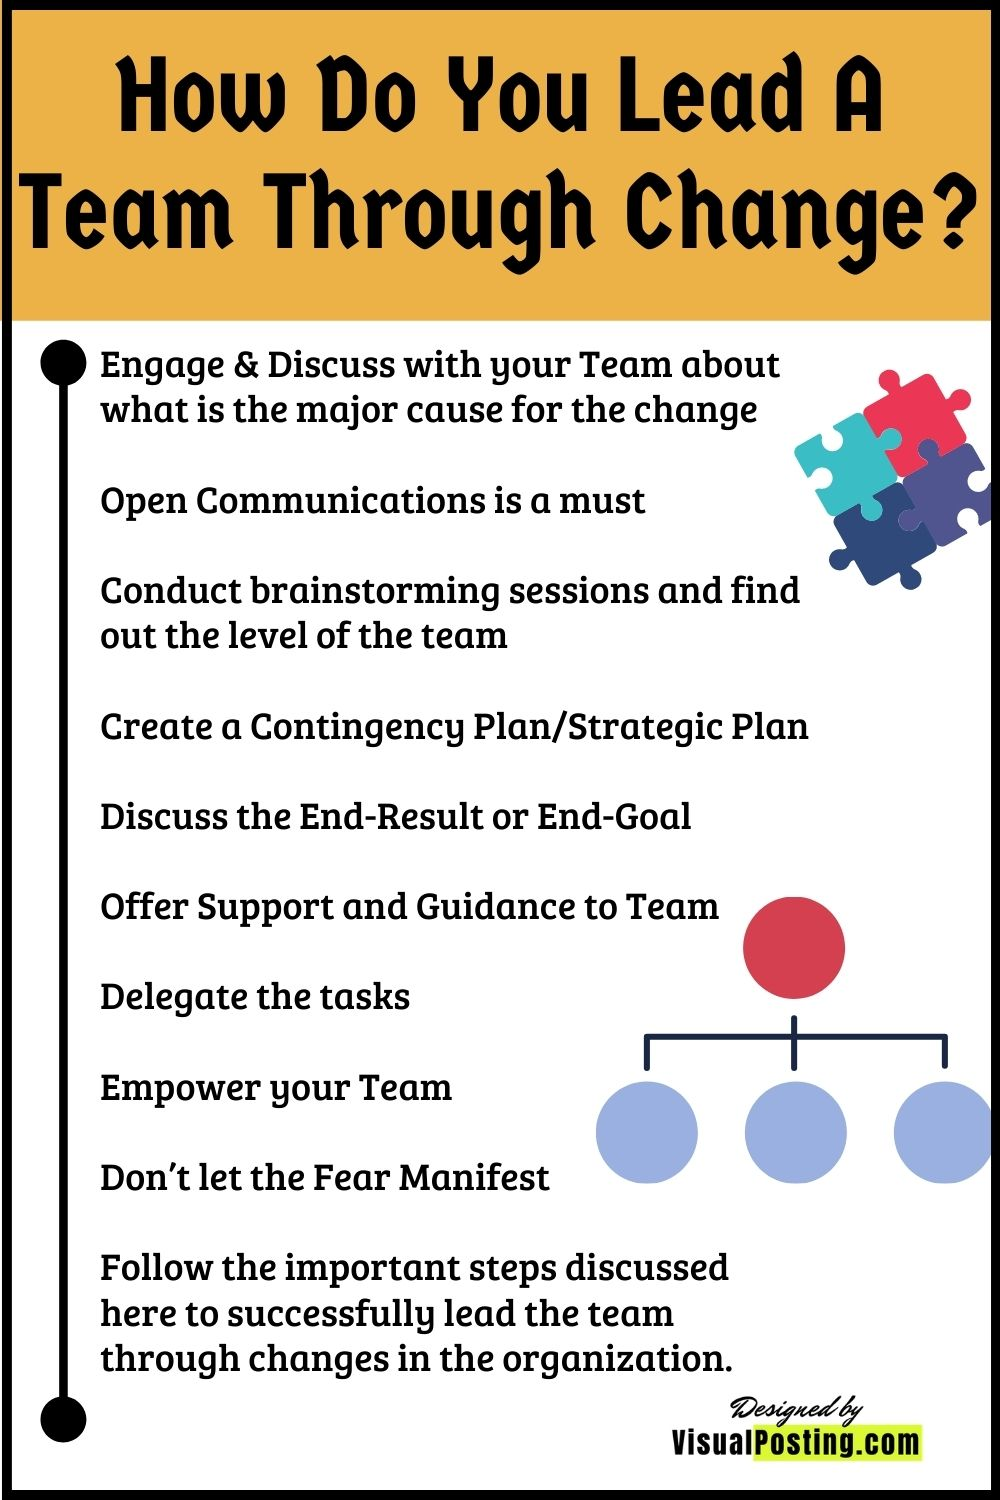 How Do You Lead A Team Through Change?.jpg